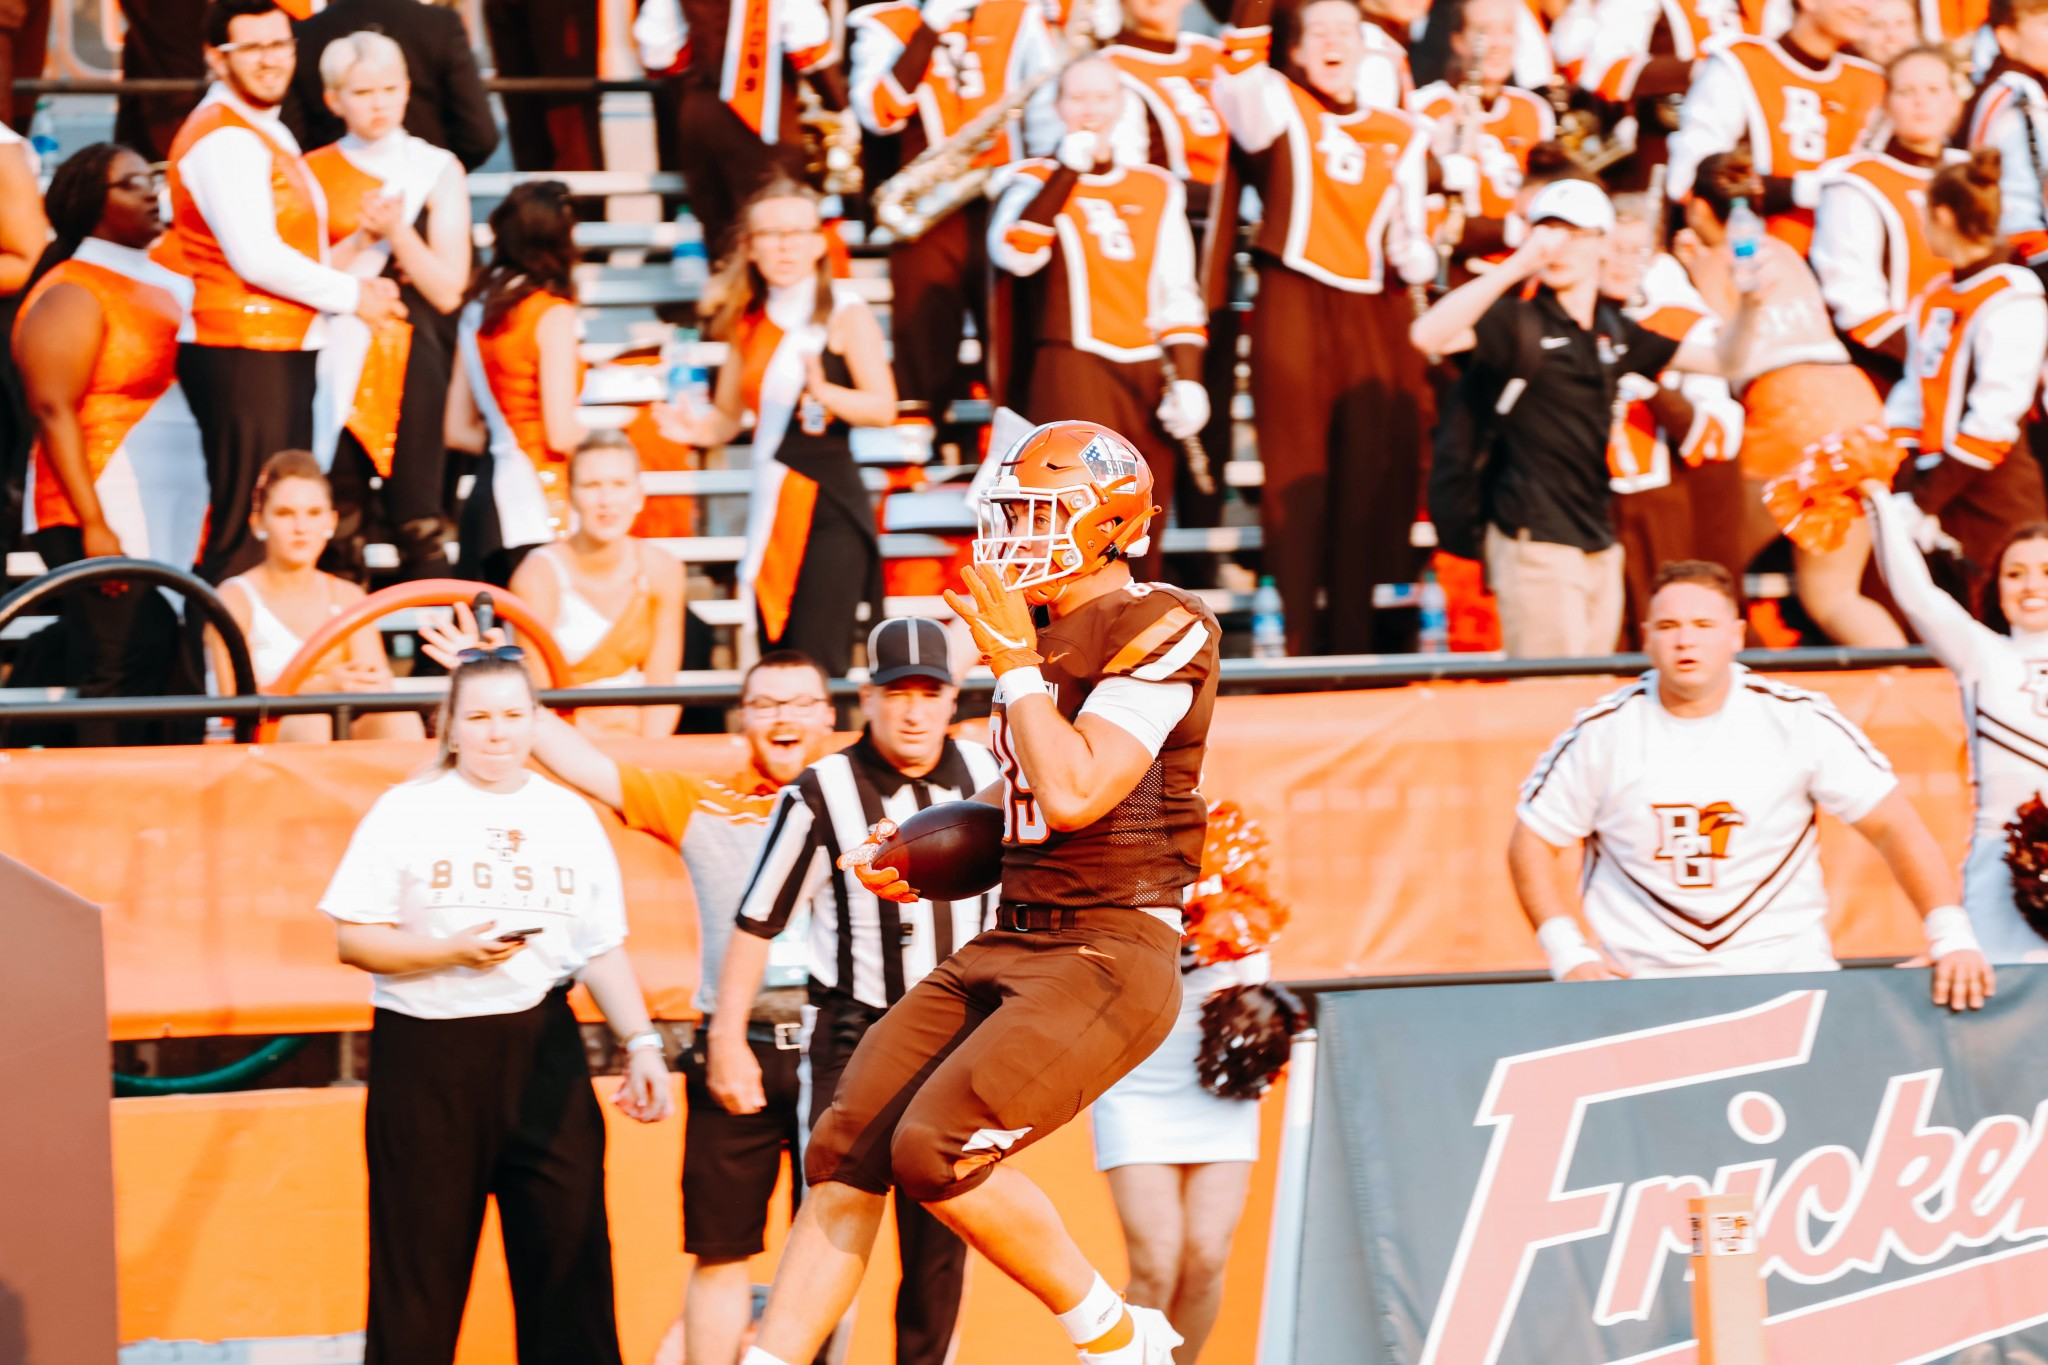 Bowling Green sophomore tight end Andrew Bench scores the Falcons' first offensive touchdown of the season, putting his team up 19-12 in the third quarter of a 22-19 loss to South Alabama. (Photo by Mallory Hiser courtesy BGSU Athletics)